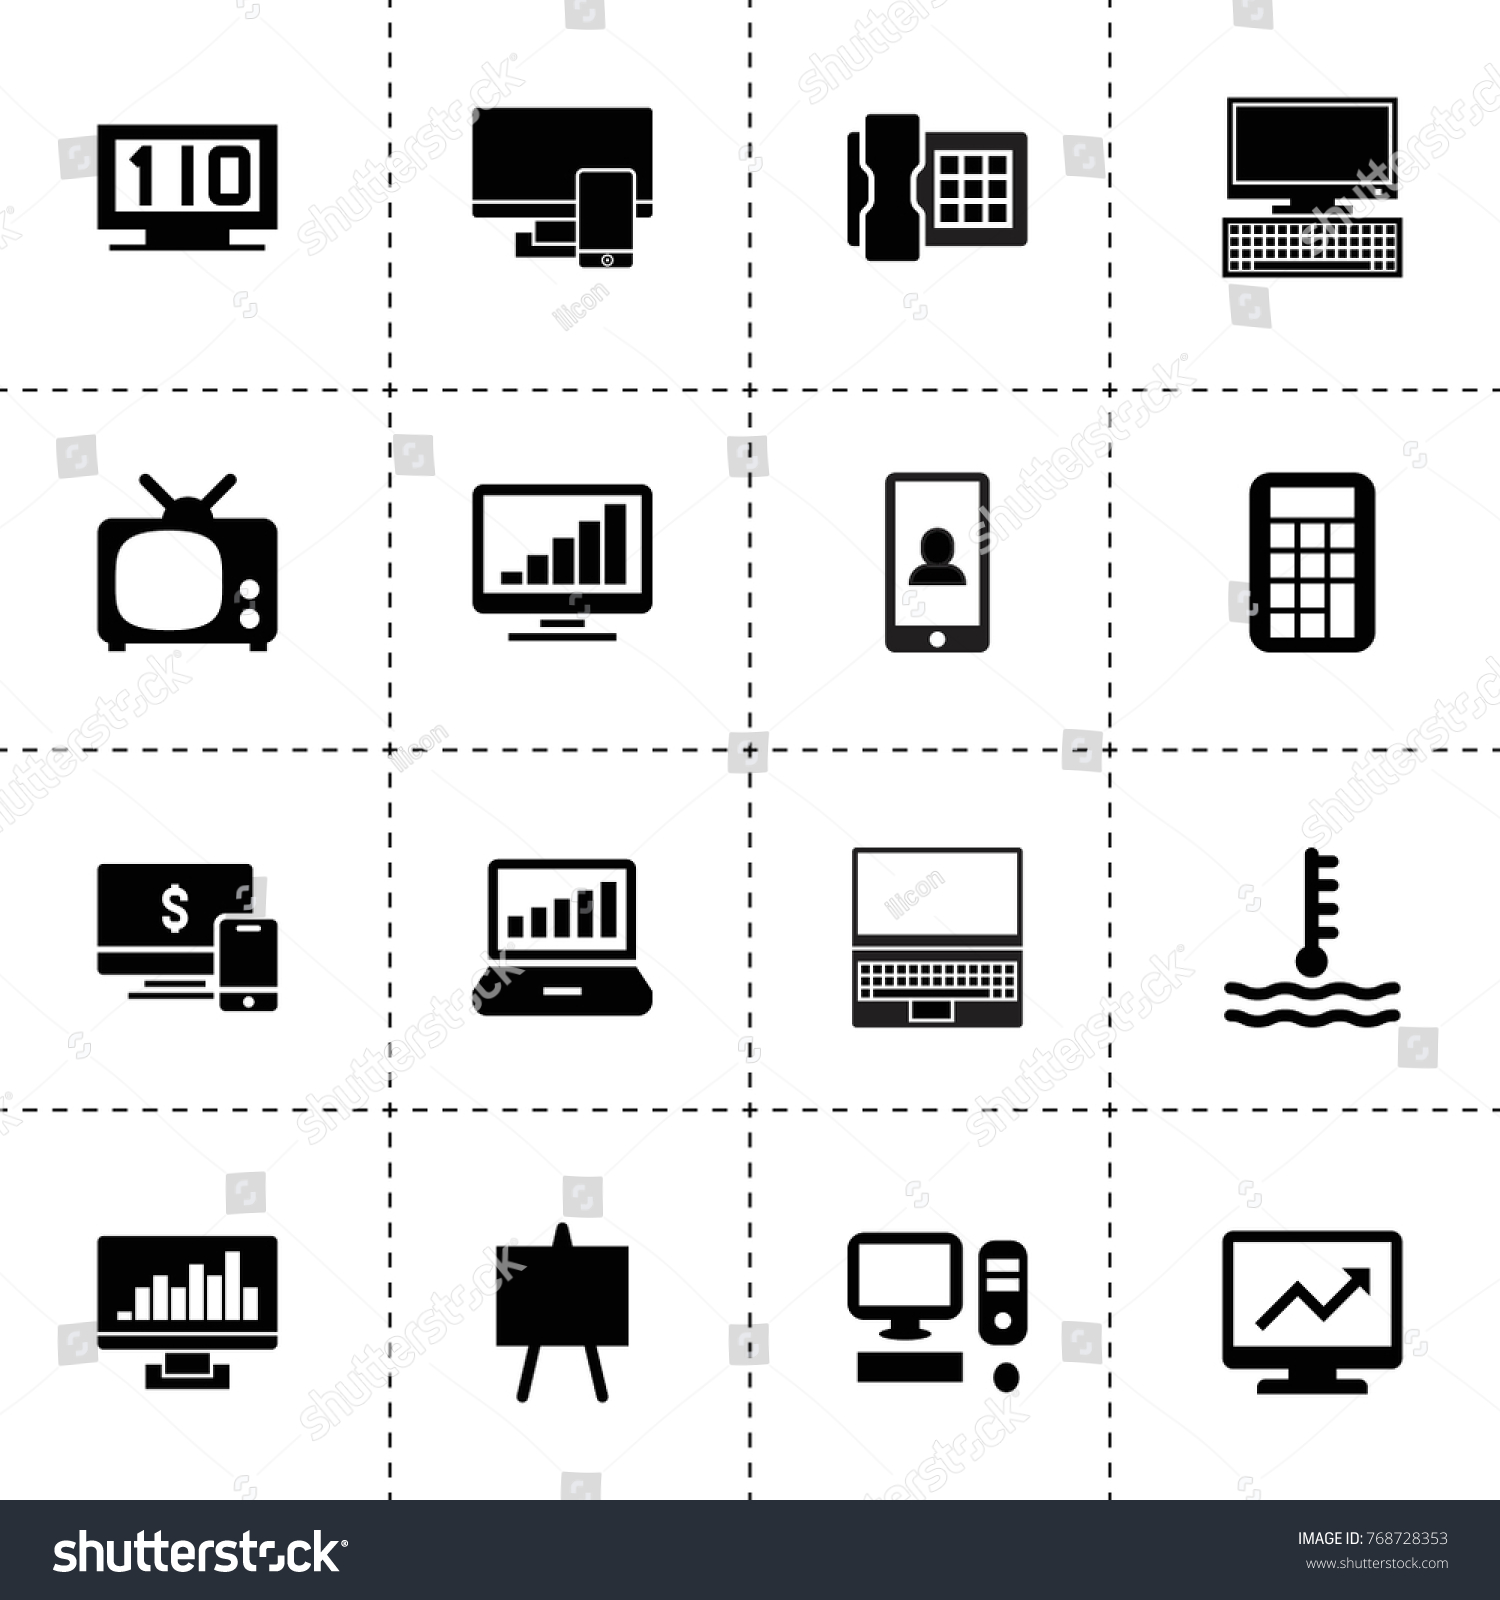 Display Icons Vector Collection Filled Display Stock Vector Royalty